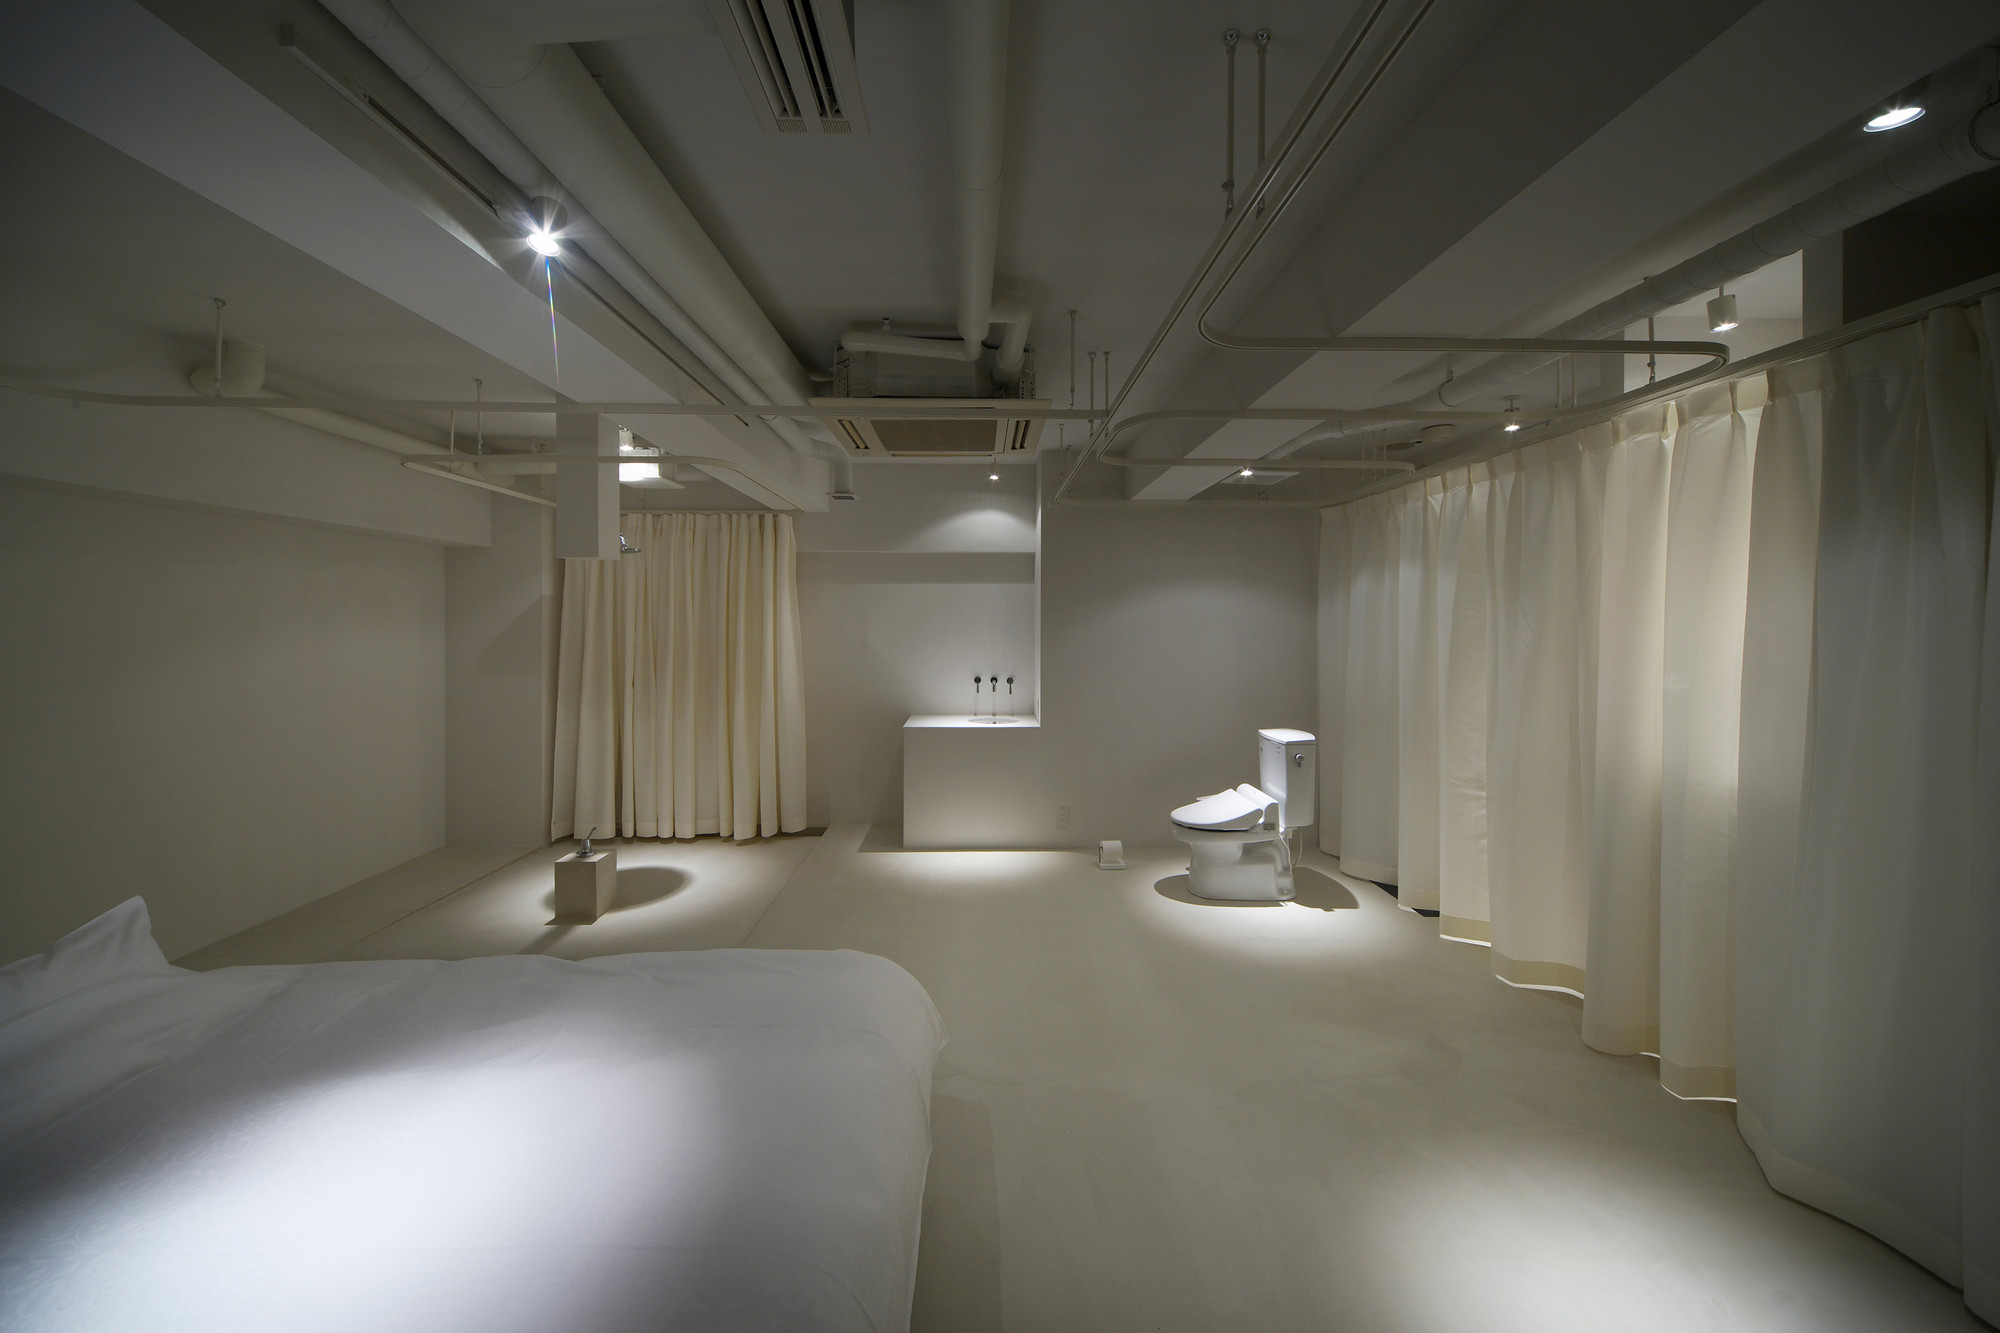 room 211 Hotel T'Point / Mifune Design Studio, © Yasunori Shimomura